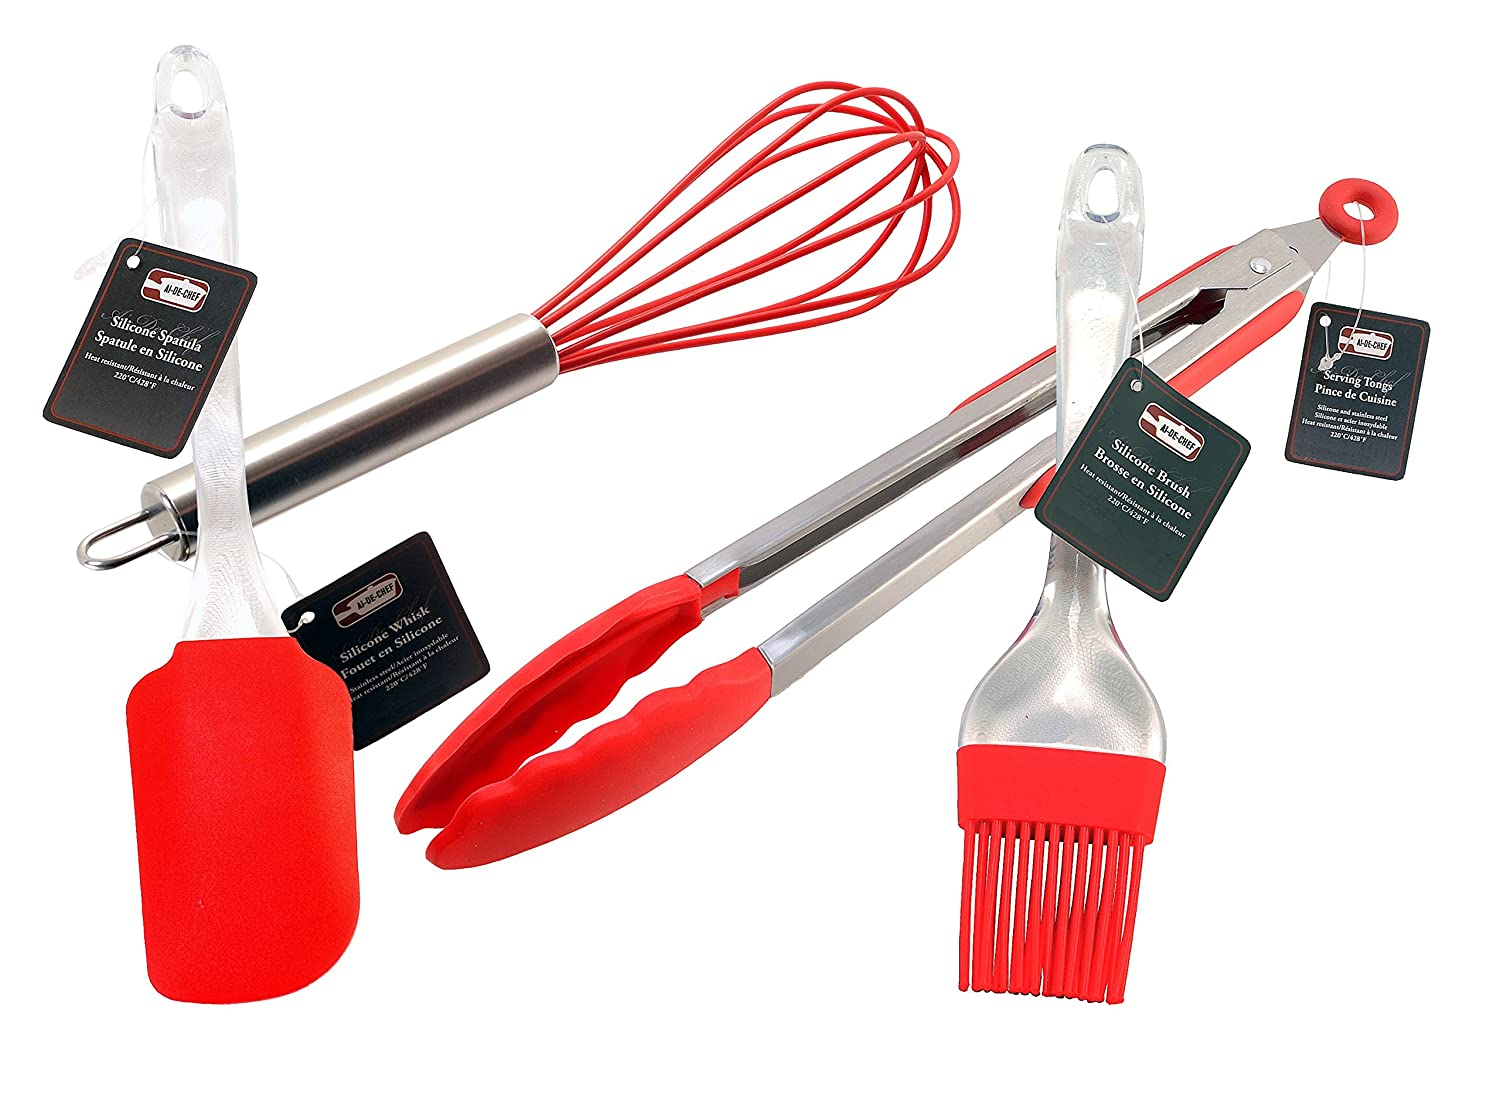 10 Whisk 1-Pack, 10 Whisk Stainless Steel /& Silicone Kitchen Utensils for Blending 10 Silicone Whisk SYMAK Heat Resistant up to 428/ºF Beating /& Stirring Whisking By Ai-De-Chef